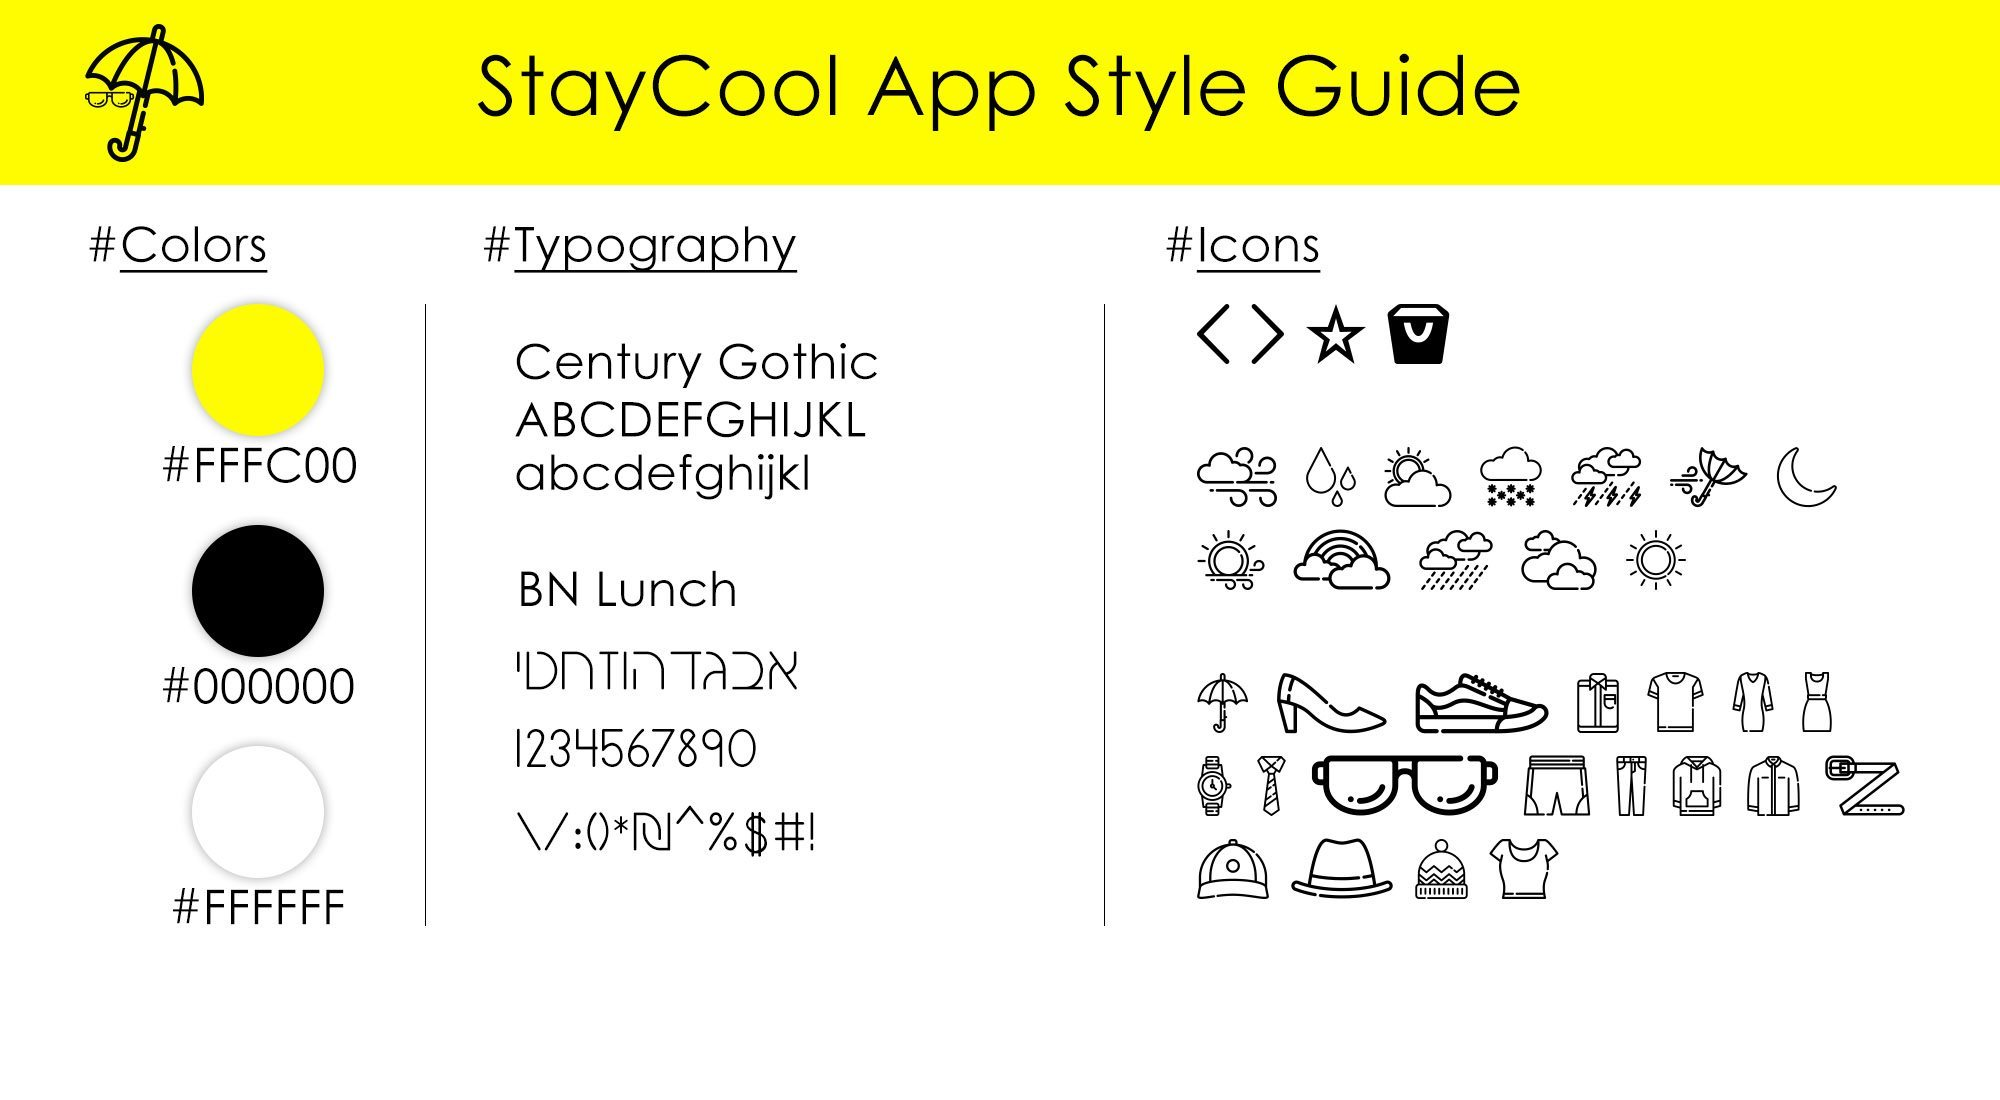 StayCool App StyleGuide